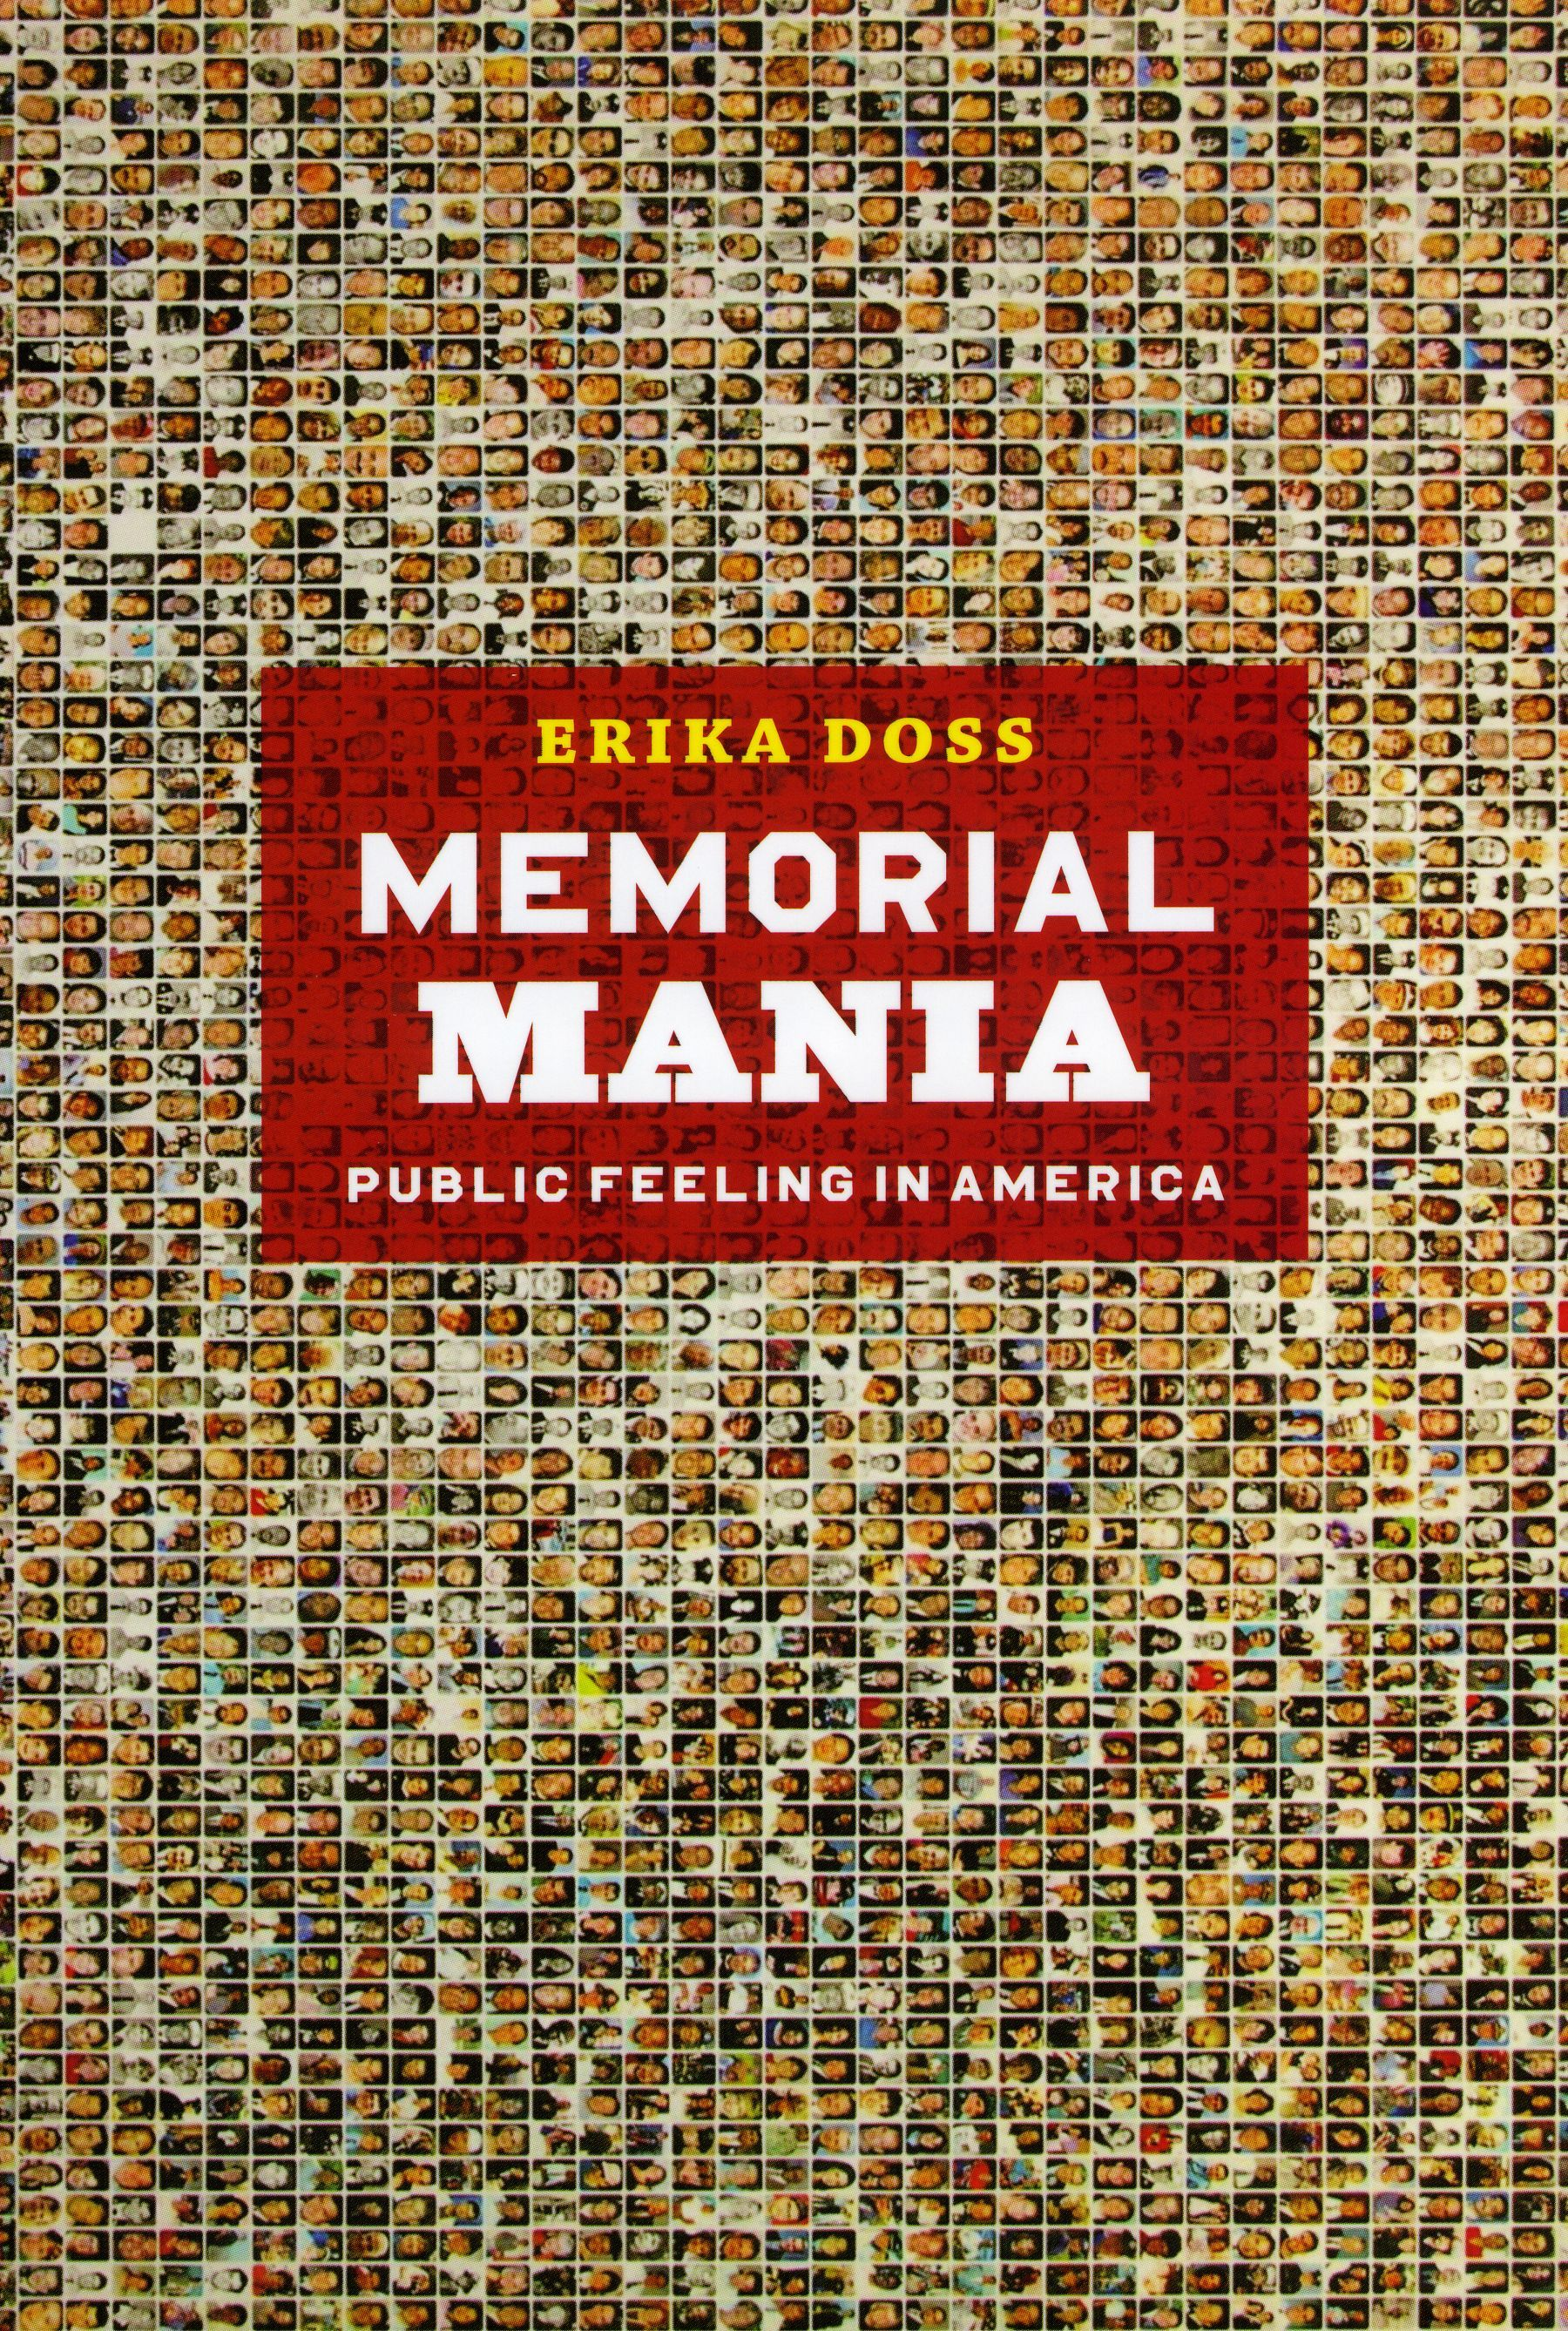 Of Memorials and Mistrials